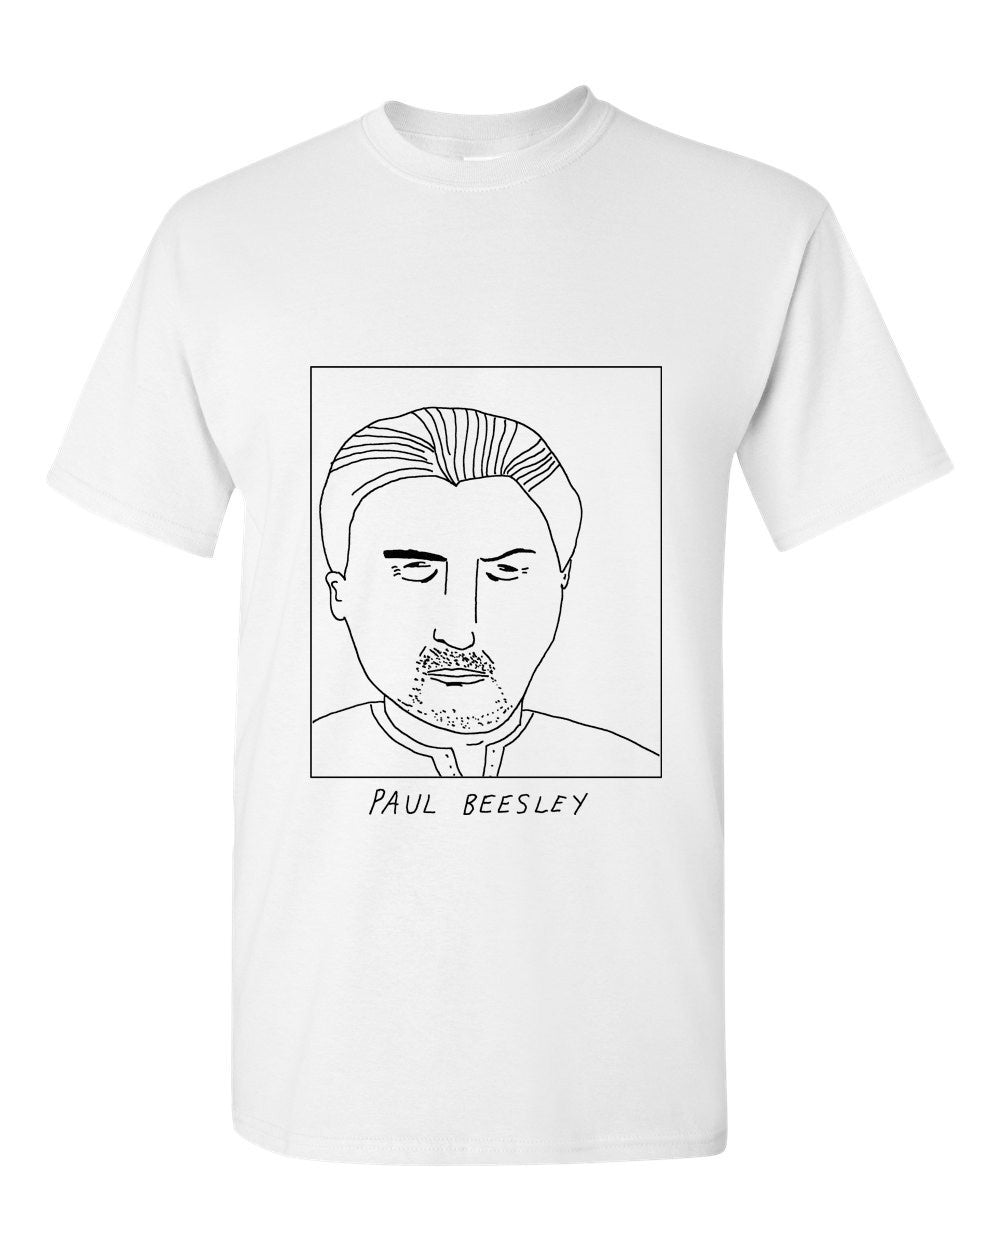 Badly Drawn Paul Beesley T-shirt - 1994 Shef United